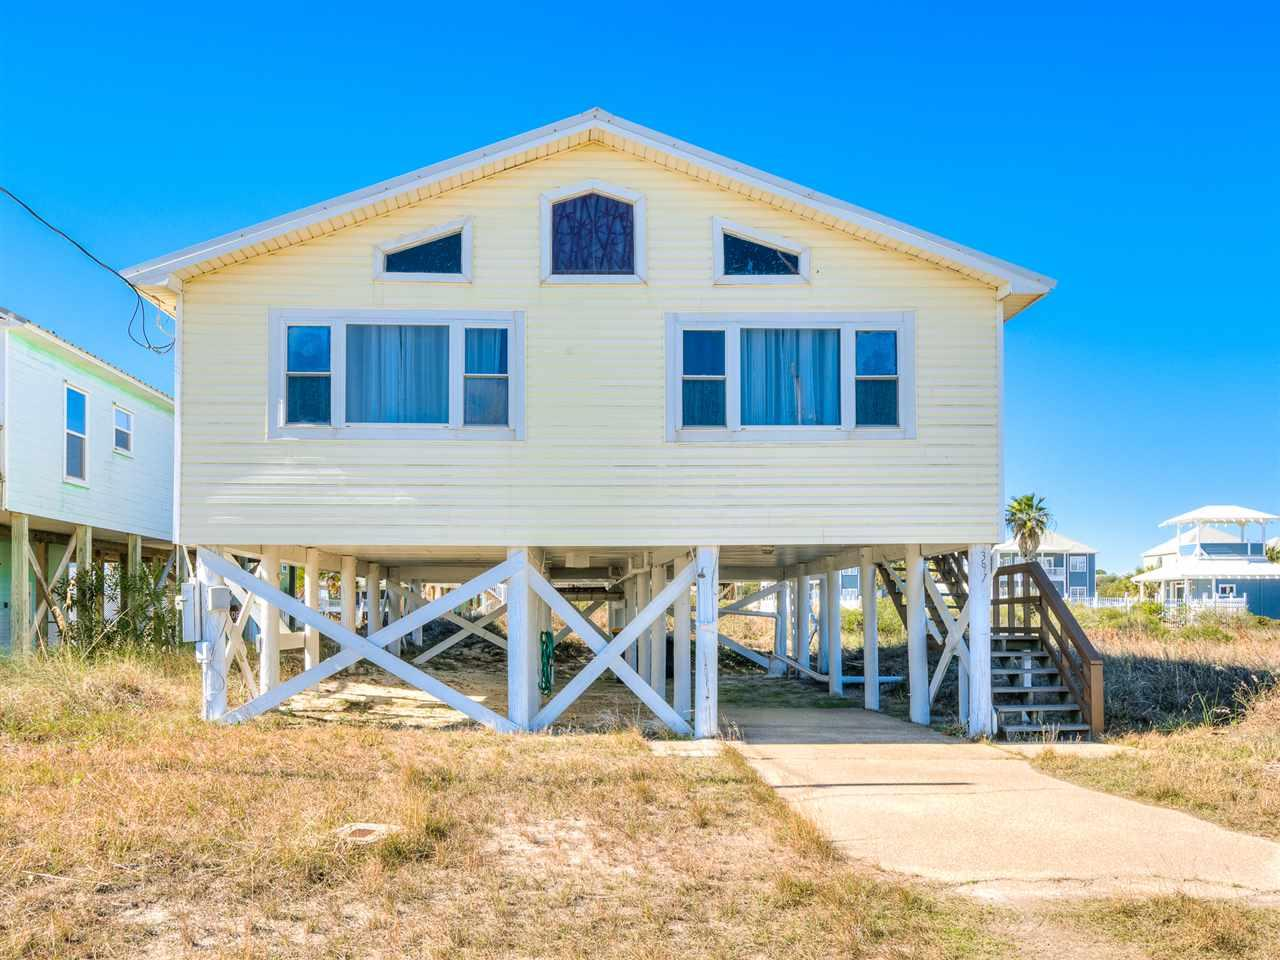 Your Beach Home Awaits! Only a few steps away from standing in the white sands of the Alabama Gulf Coast. The space is a wonderful area to spend quality family time. Short walk to the beach with incredible views of the Gulf of Mexico and Mobile Bay in the short distance. Truly a place to get away from the daily grind. Come home and relax in this great beach home! Nicely furnished and rent ready! Covered parking under house. Close to Boat Launch and Marina. Jump on this one, it won't last long! Text, call, or email me anytime. YOUR REALTOR FOR LIFE.